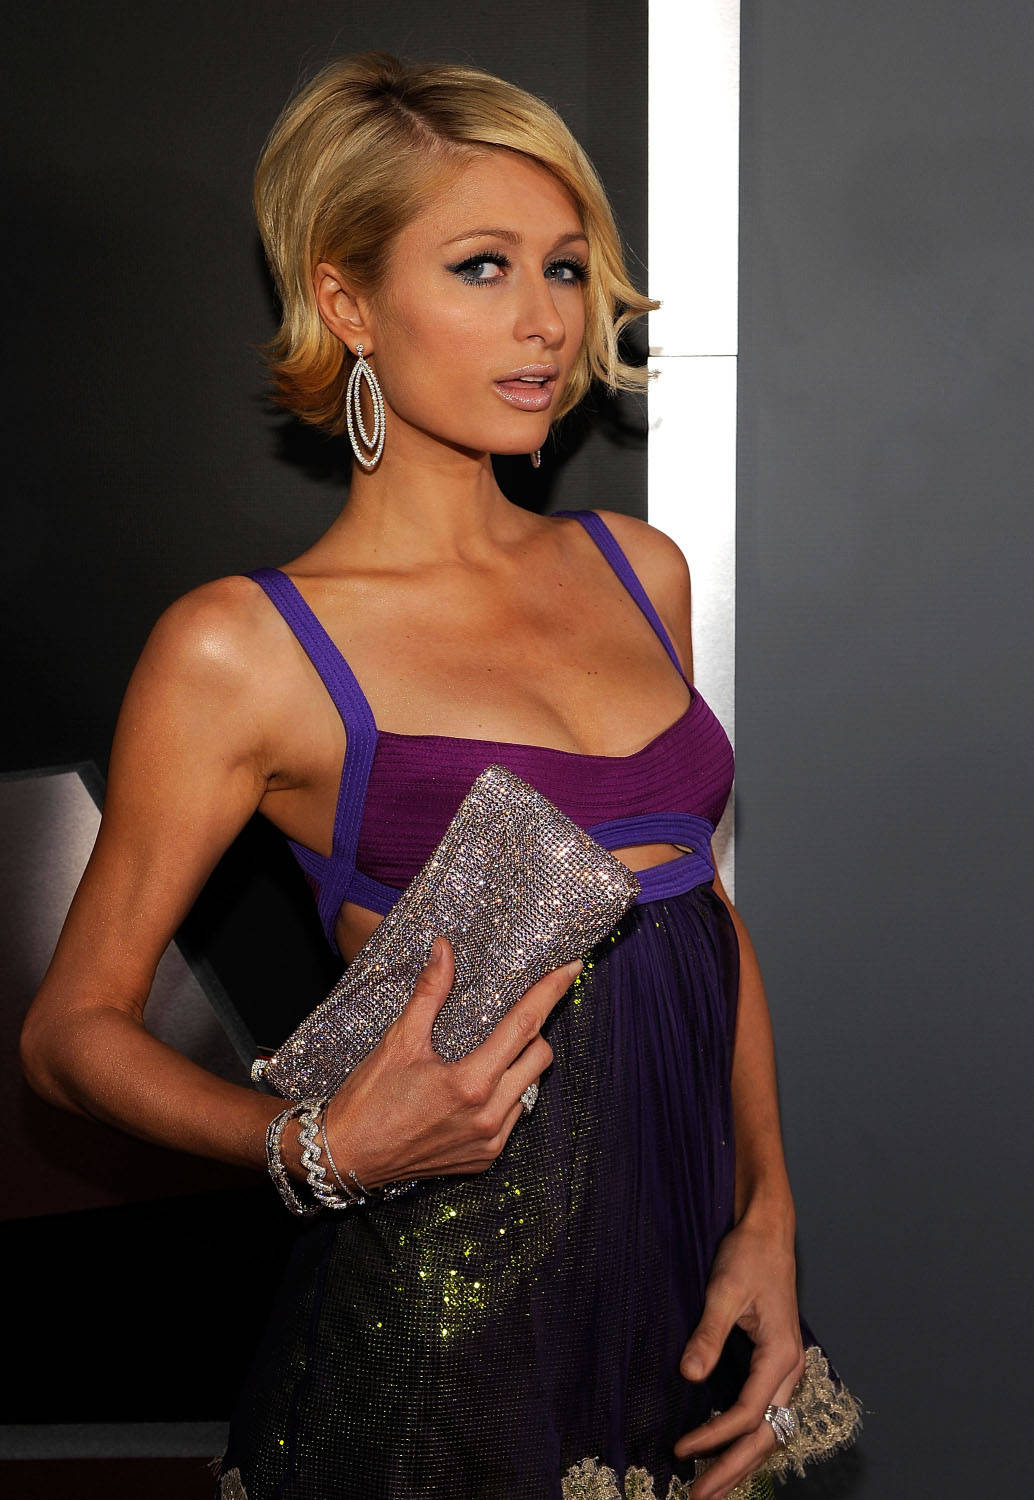 Paris Hilton Diamond Clutch She12 Girls Beauty Salon